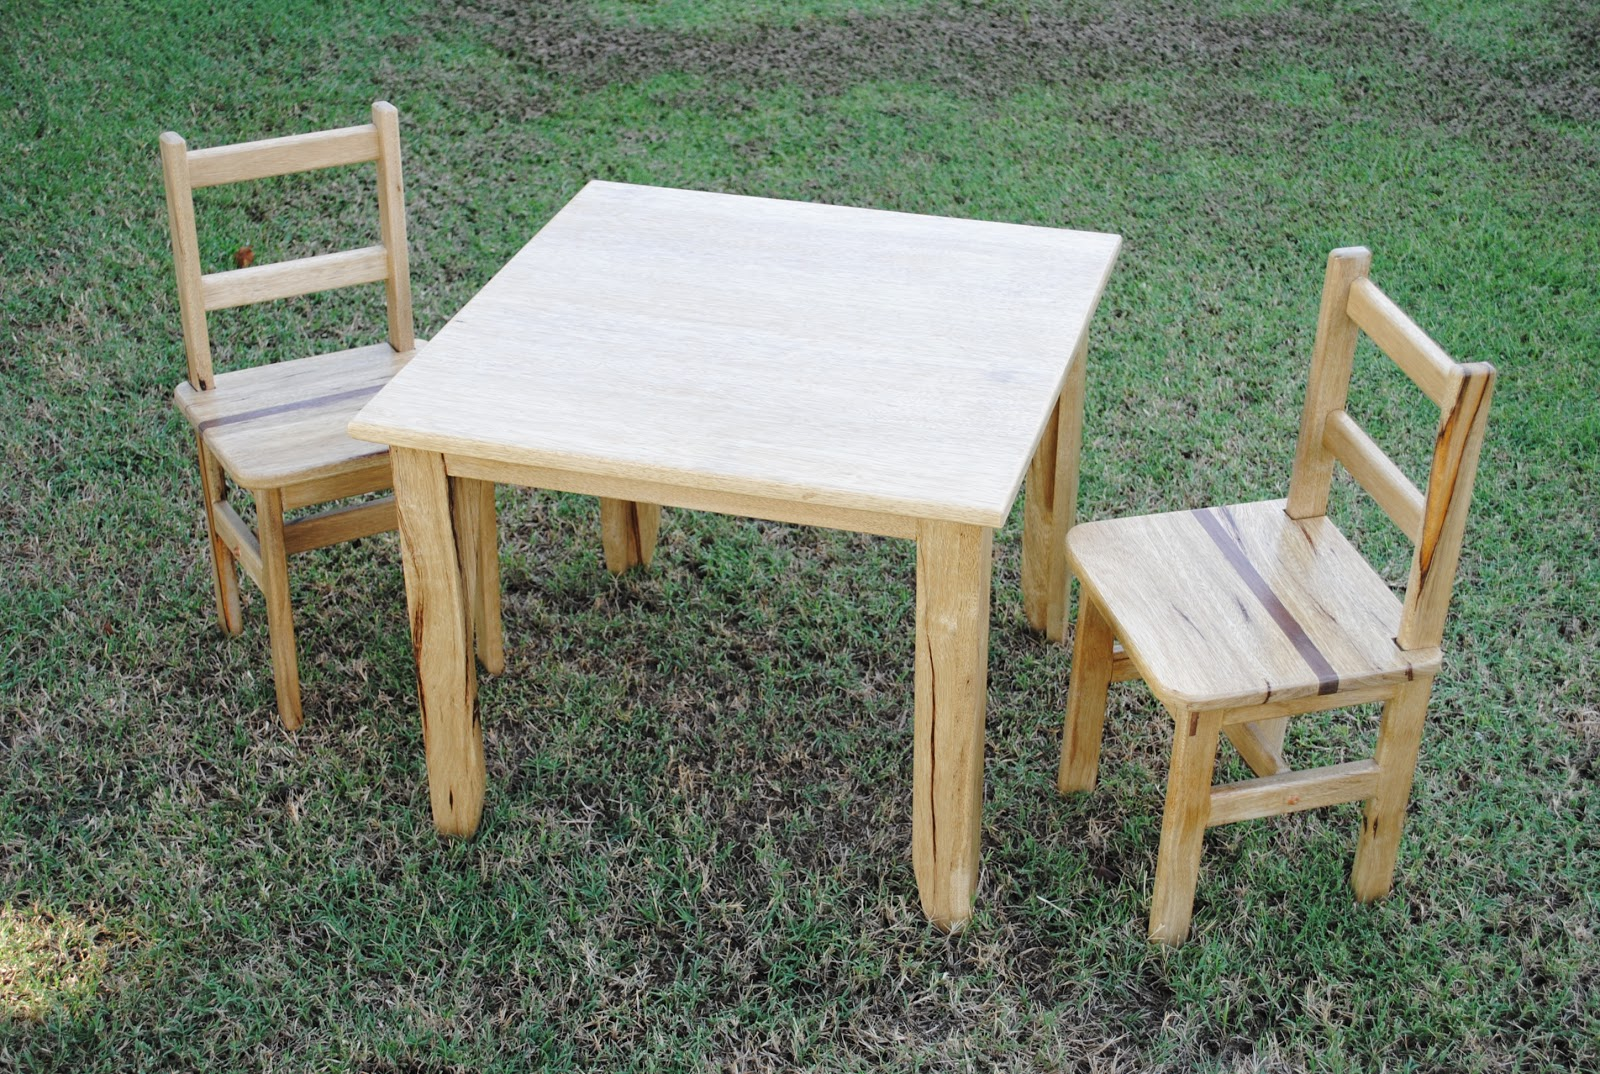 First Light Woodworking - Unplugged: Child's Table and Chairs